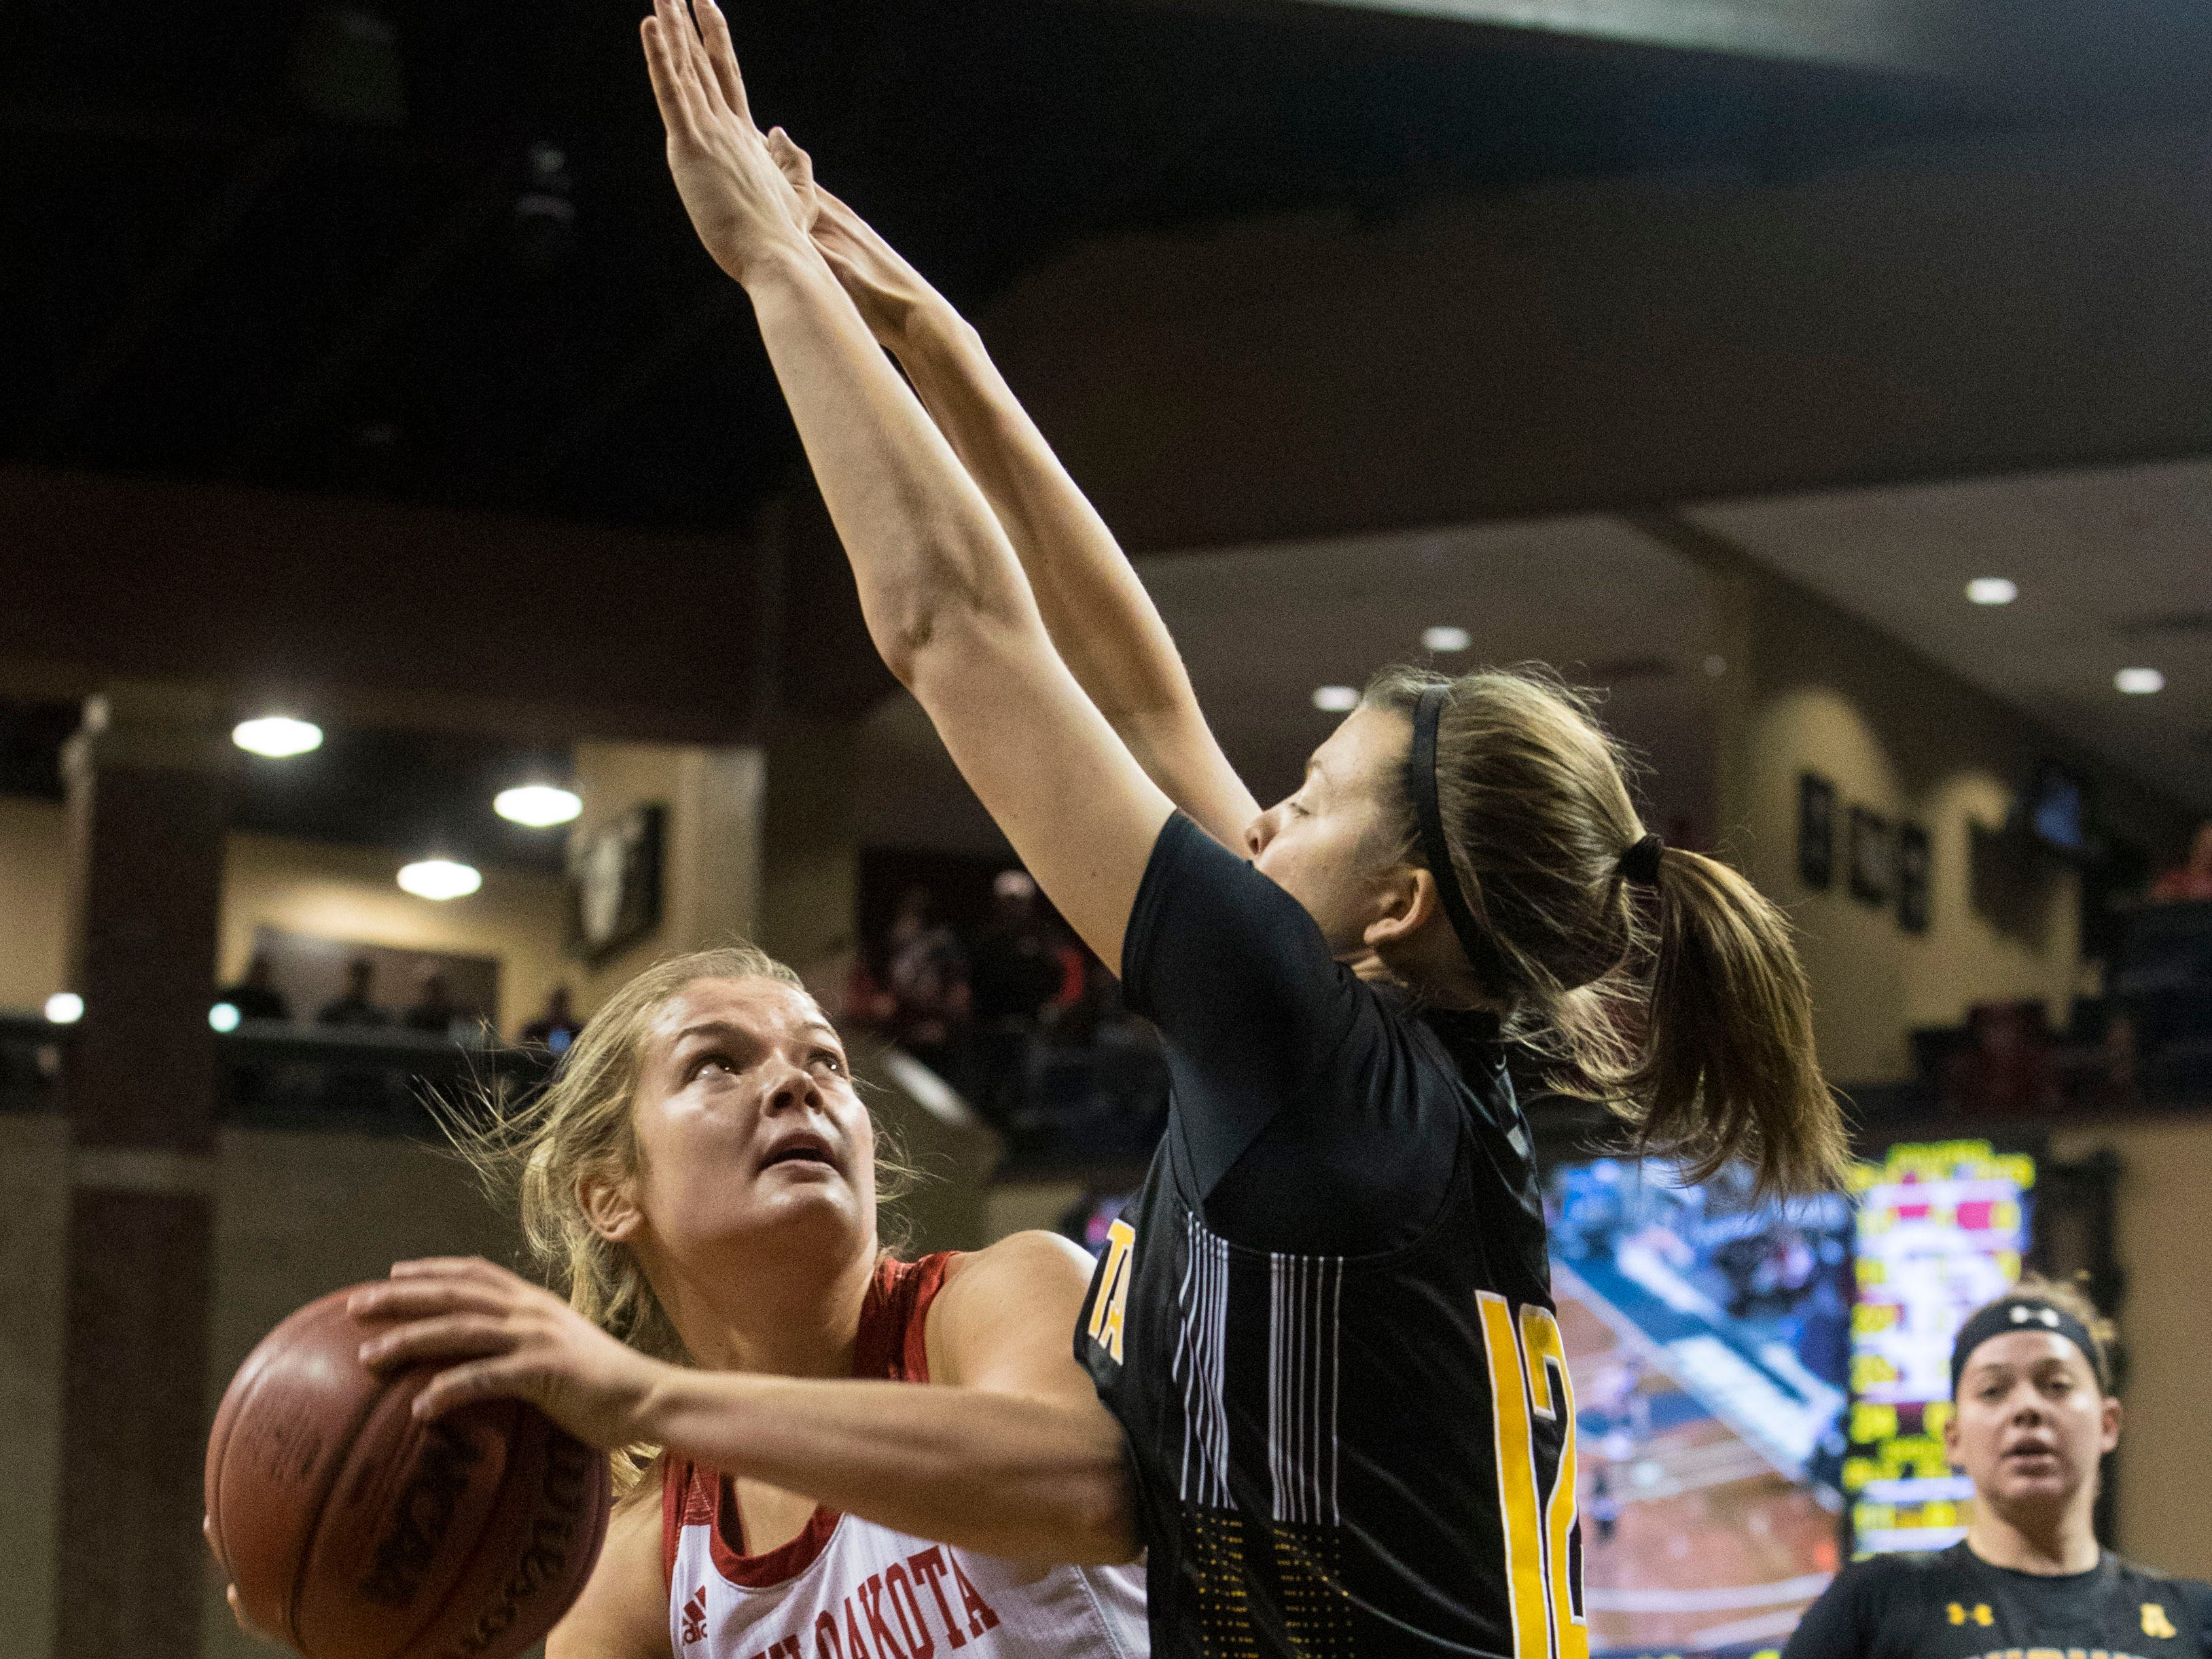 USD's Taylor Frederick (15) gets blocked by Wichita State player during a game at the Sanford Pentagon in Sioux Falls, S.D., Wednesday, Nov. 21, 2018.